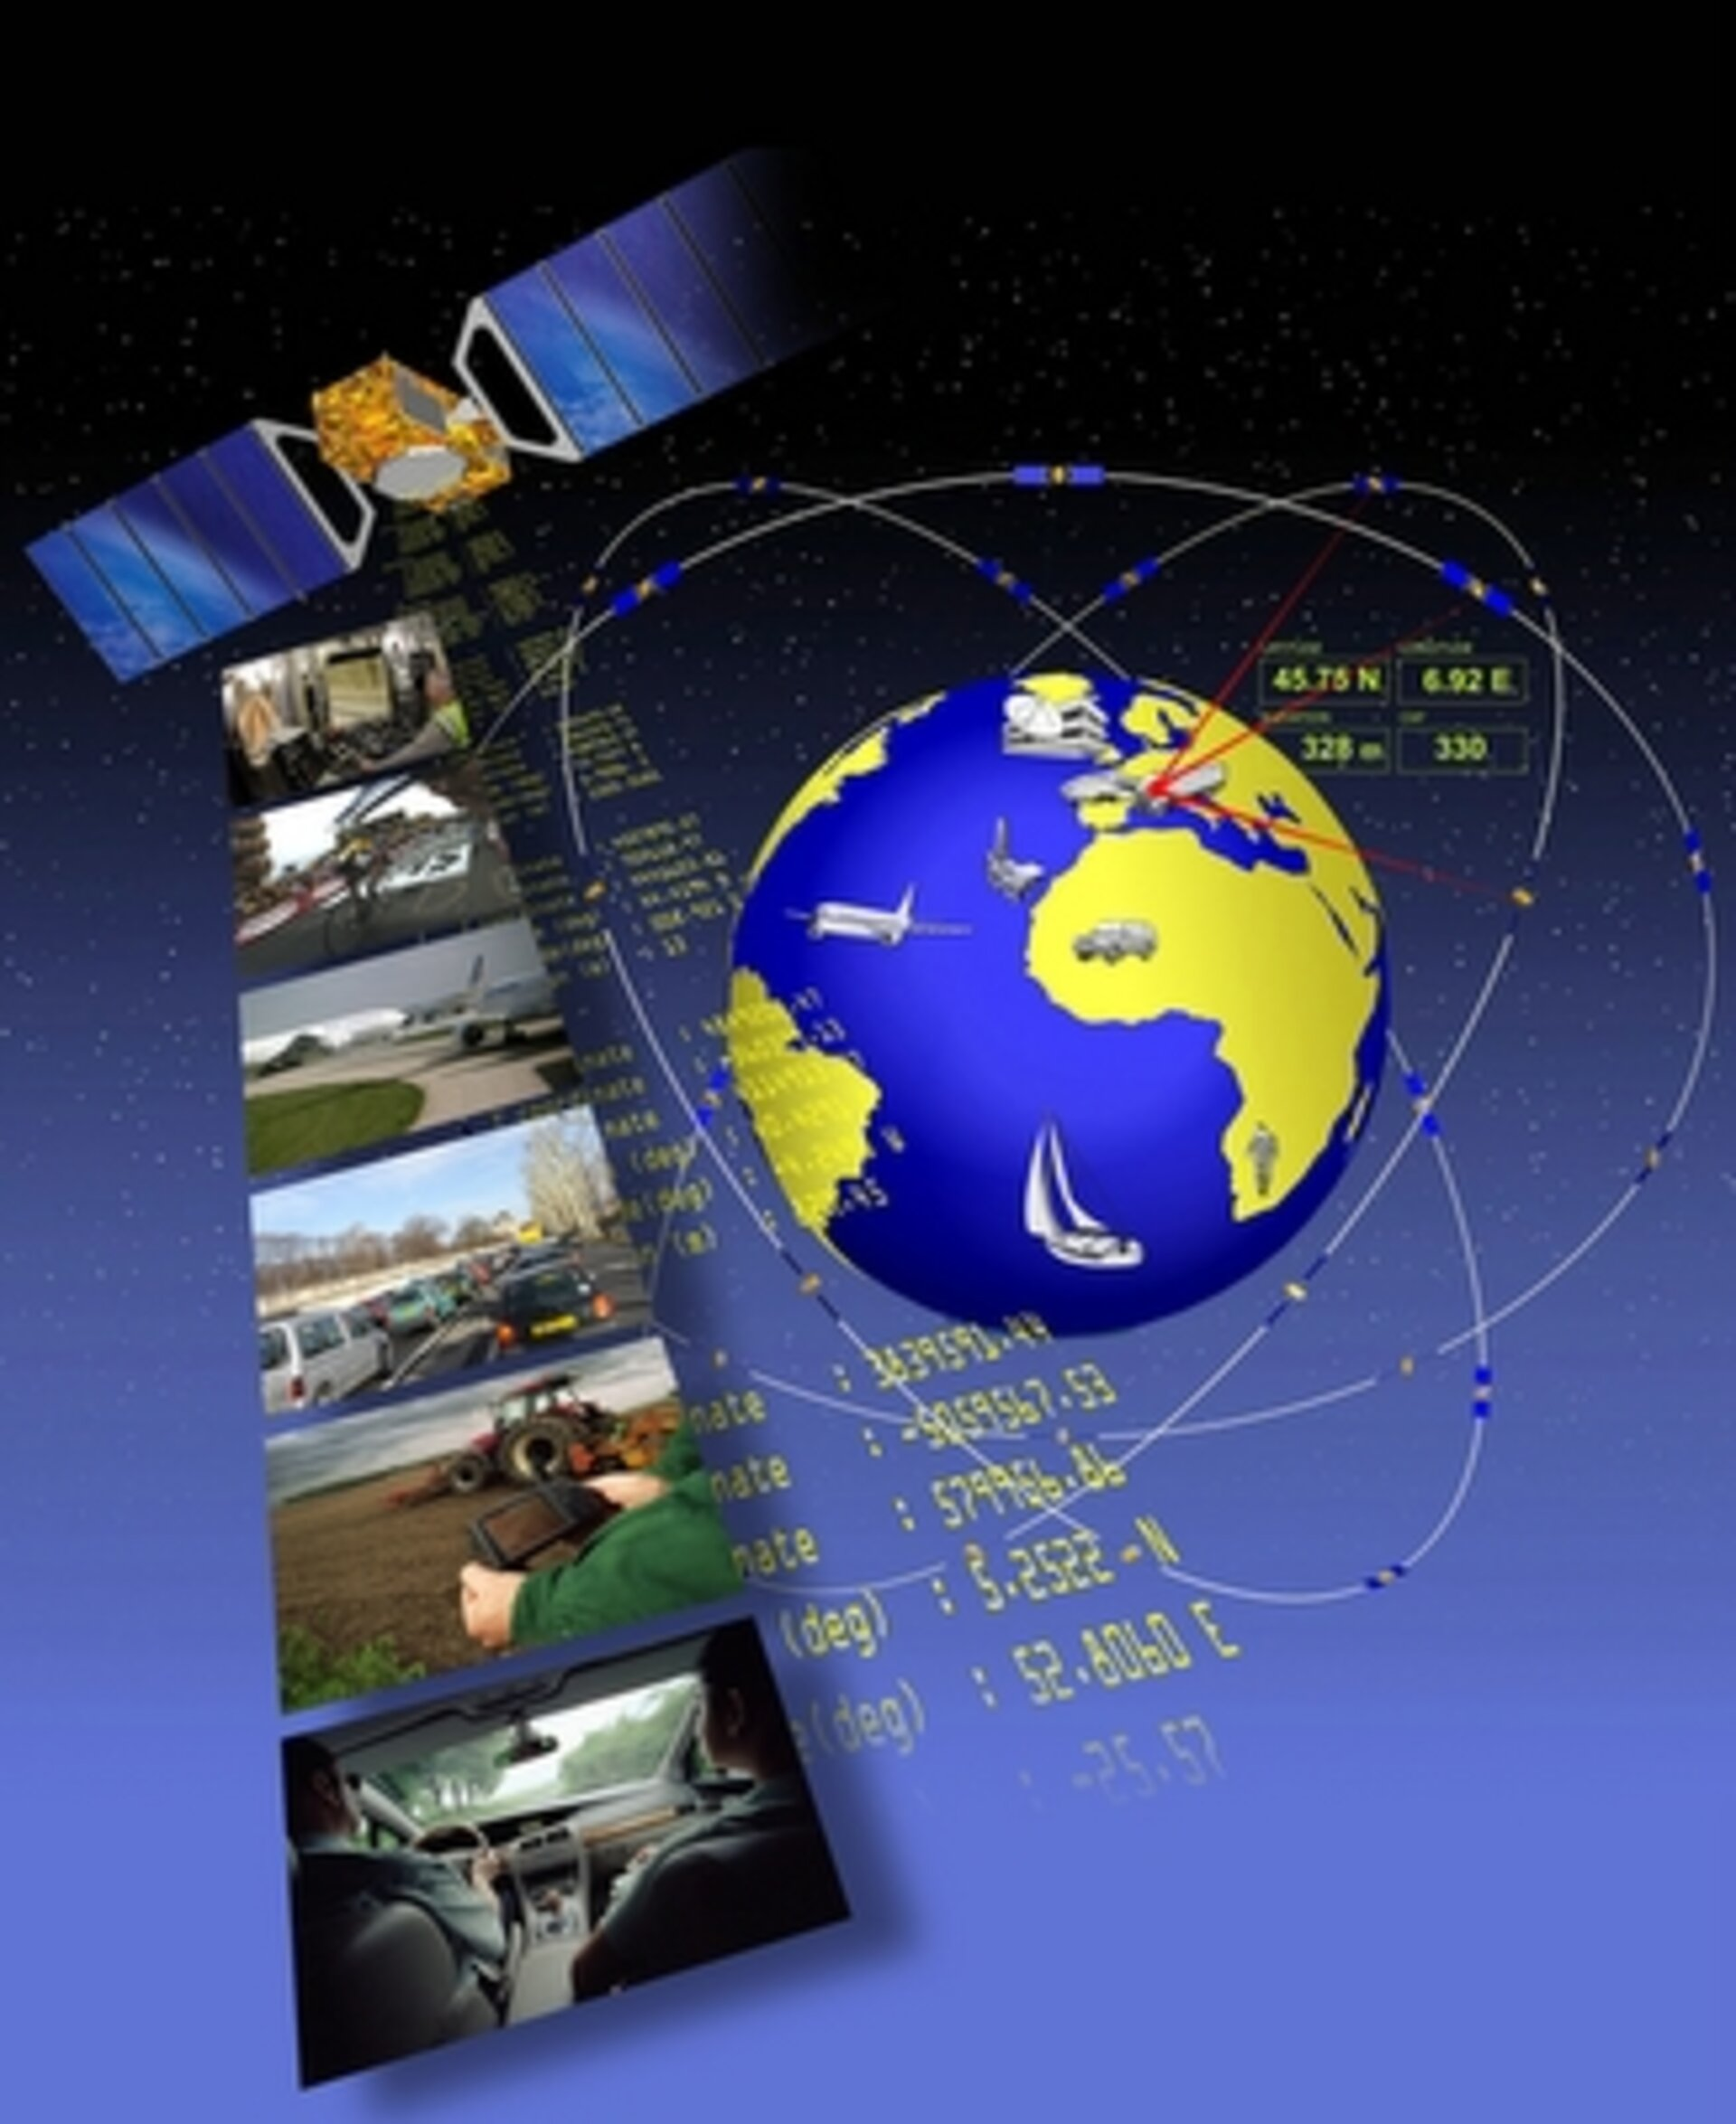 Satellite navigation data are used for many applications